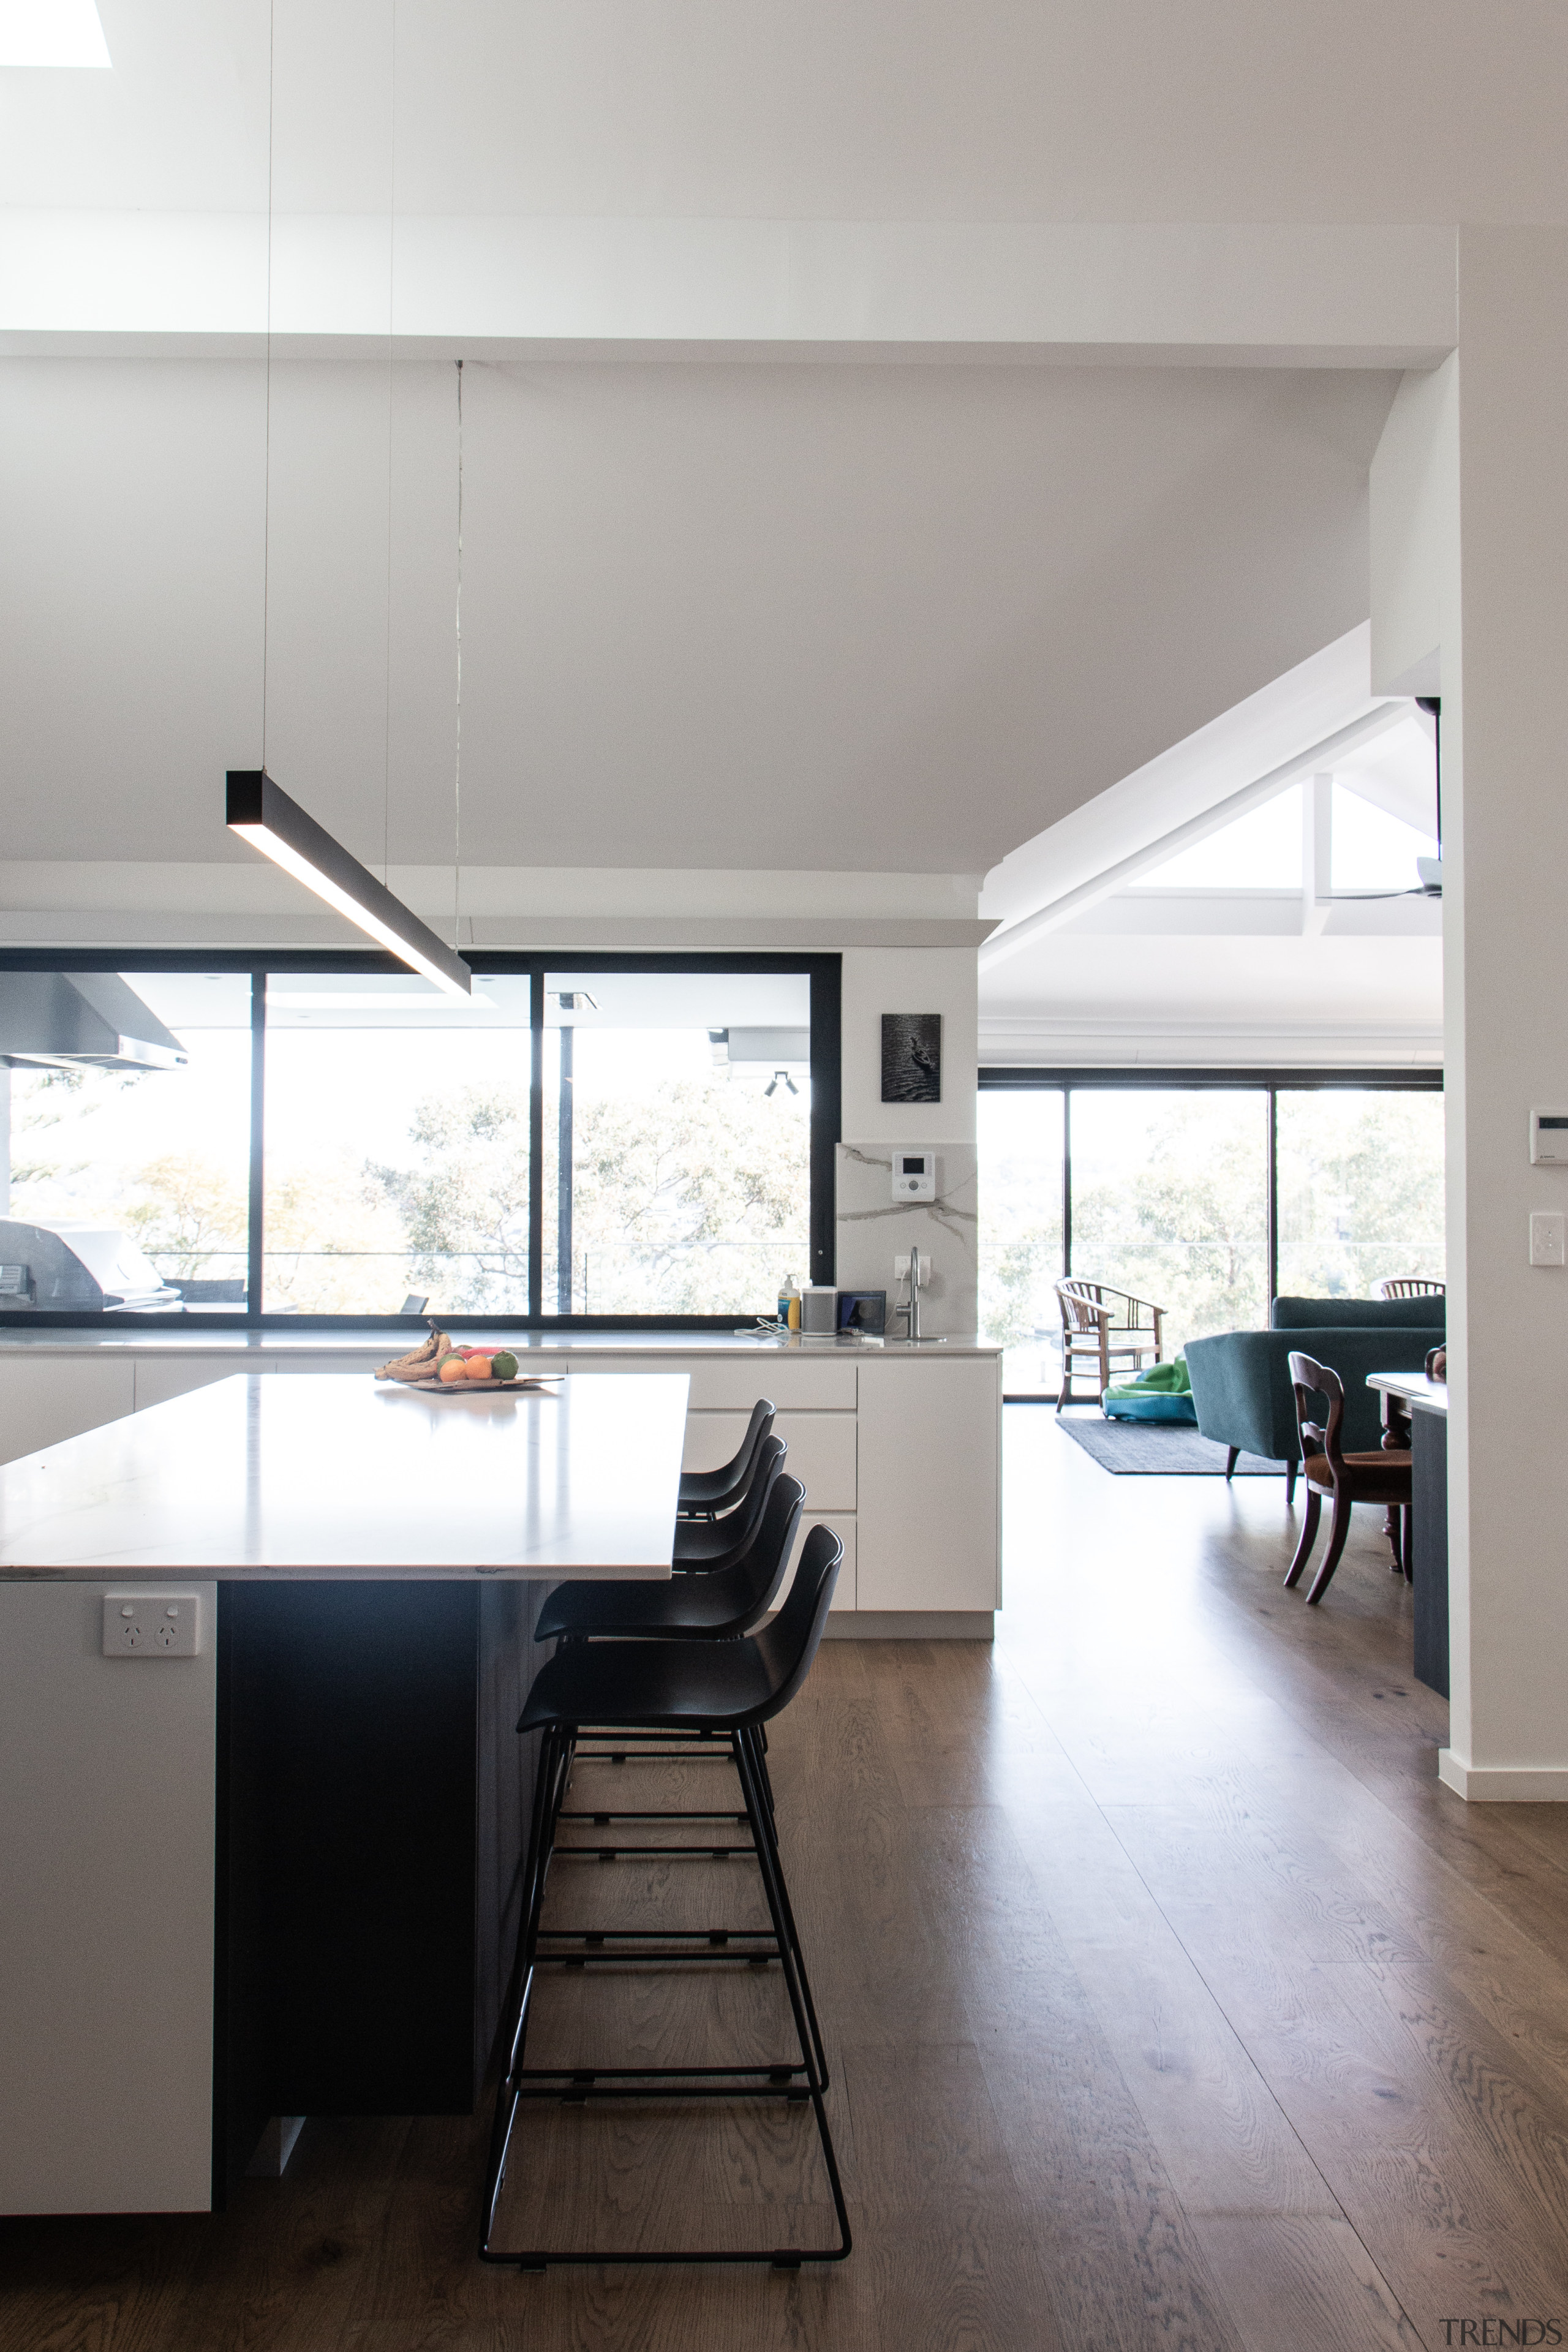 A pelmet conceals dedicated lighting above the servery gray